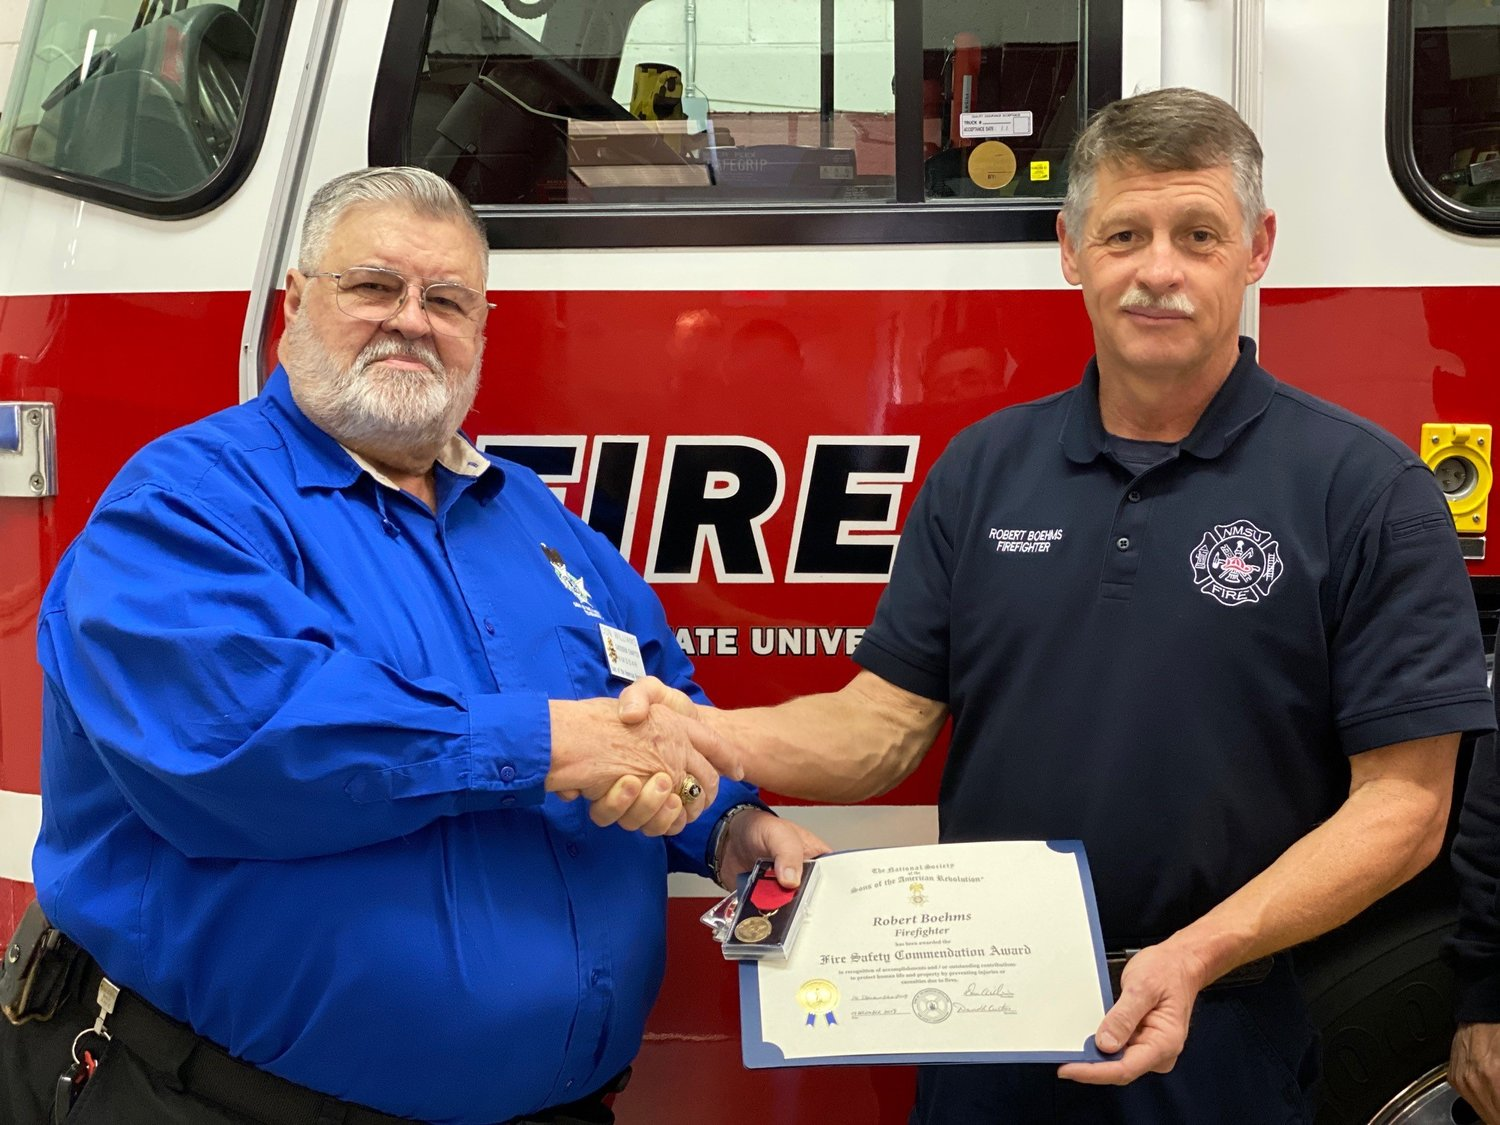 President Don Williams, left, of the Gadsden Chapter of the Sons of the American Revolution (SAR) and New Mexico State University firefighter Robert Boehms